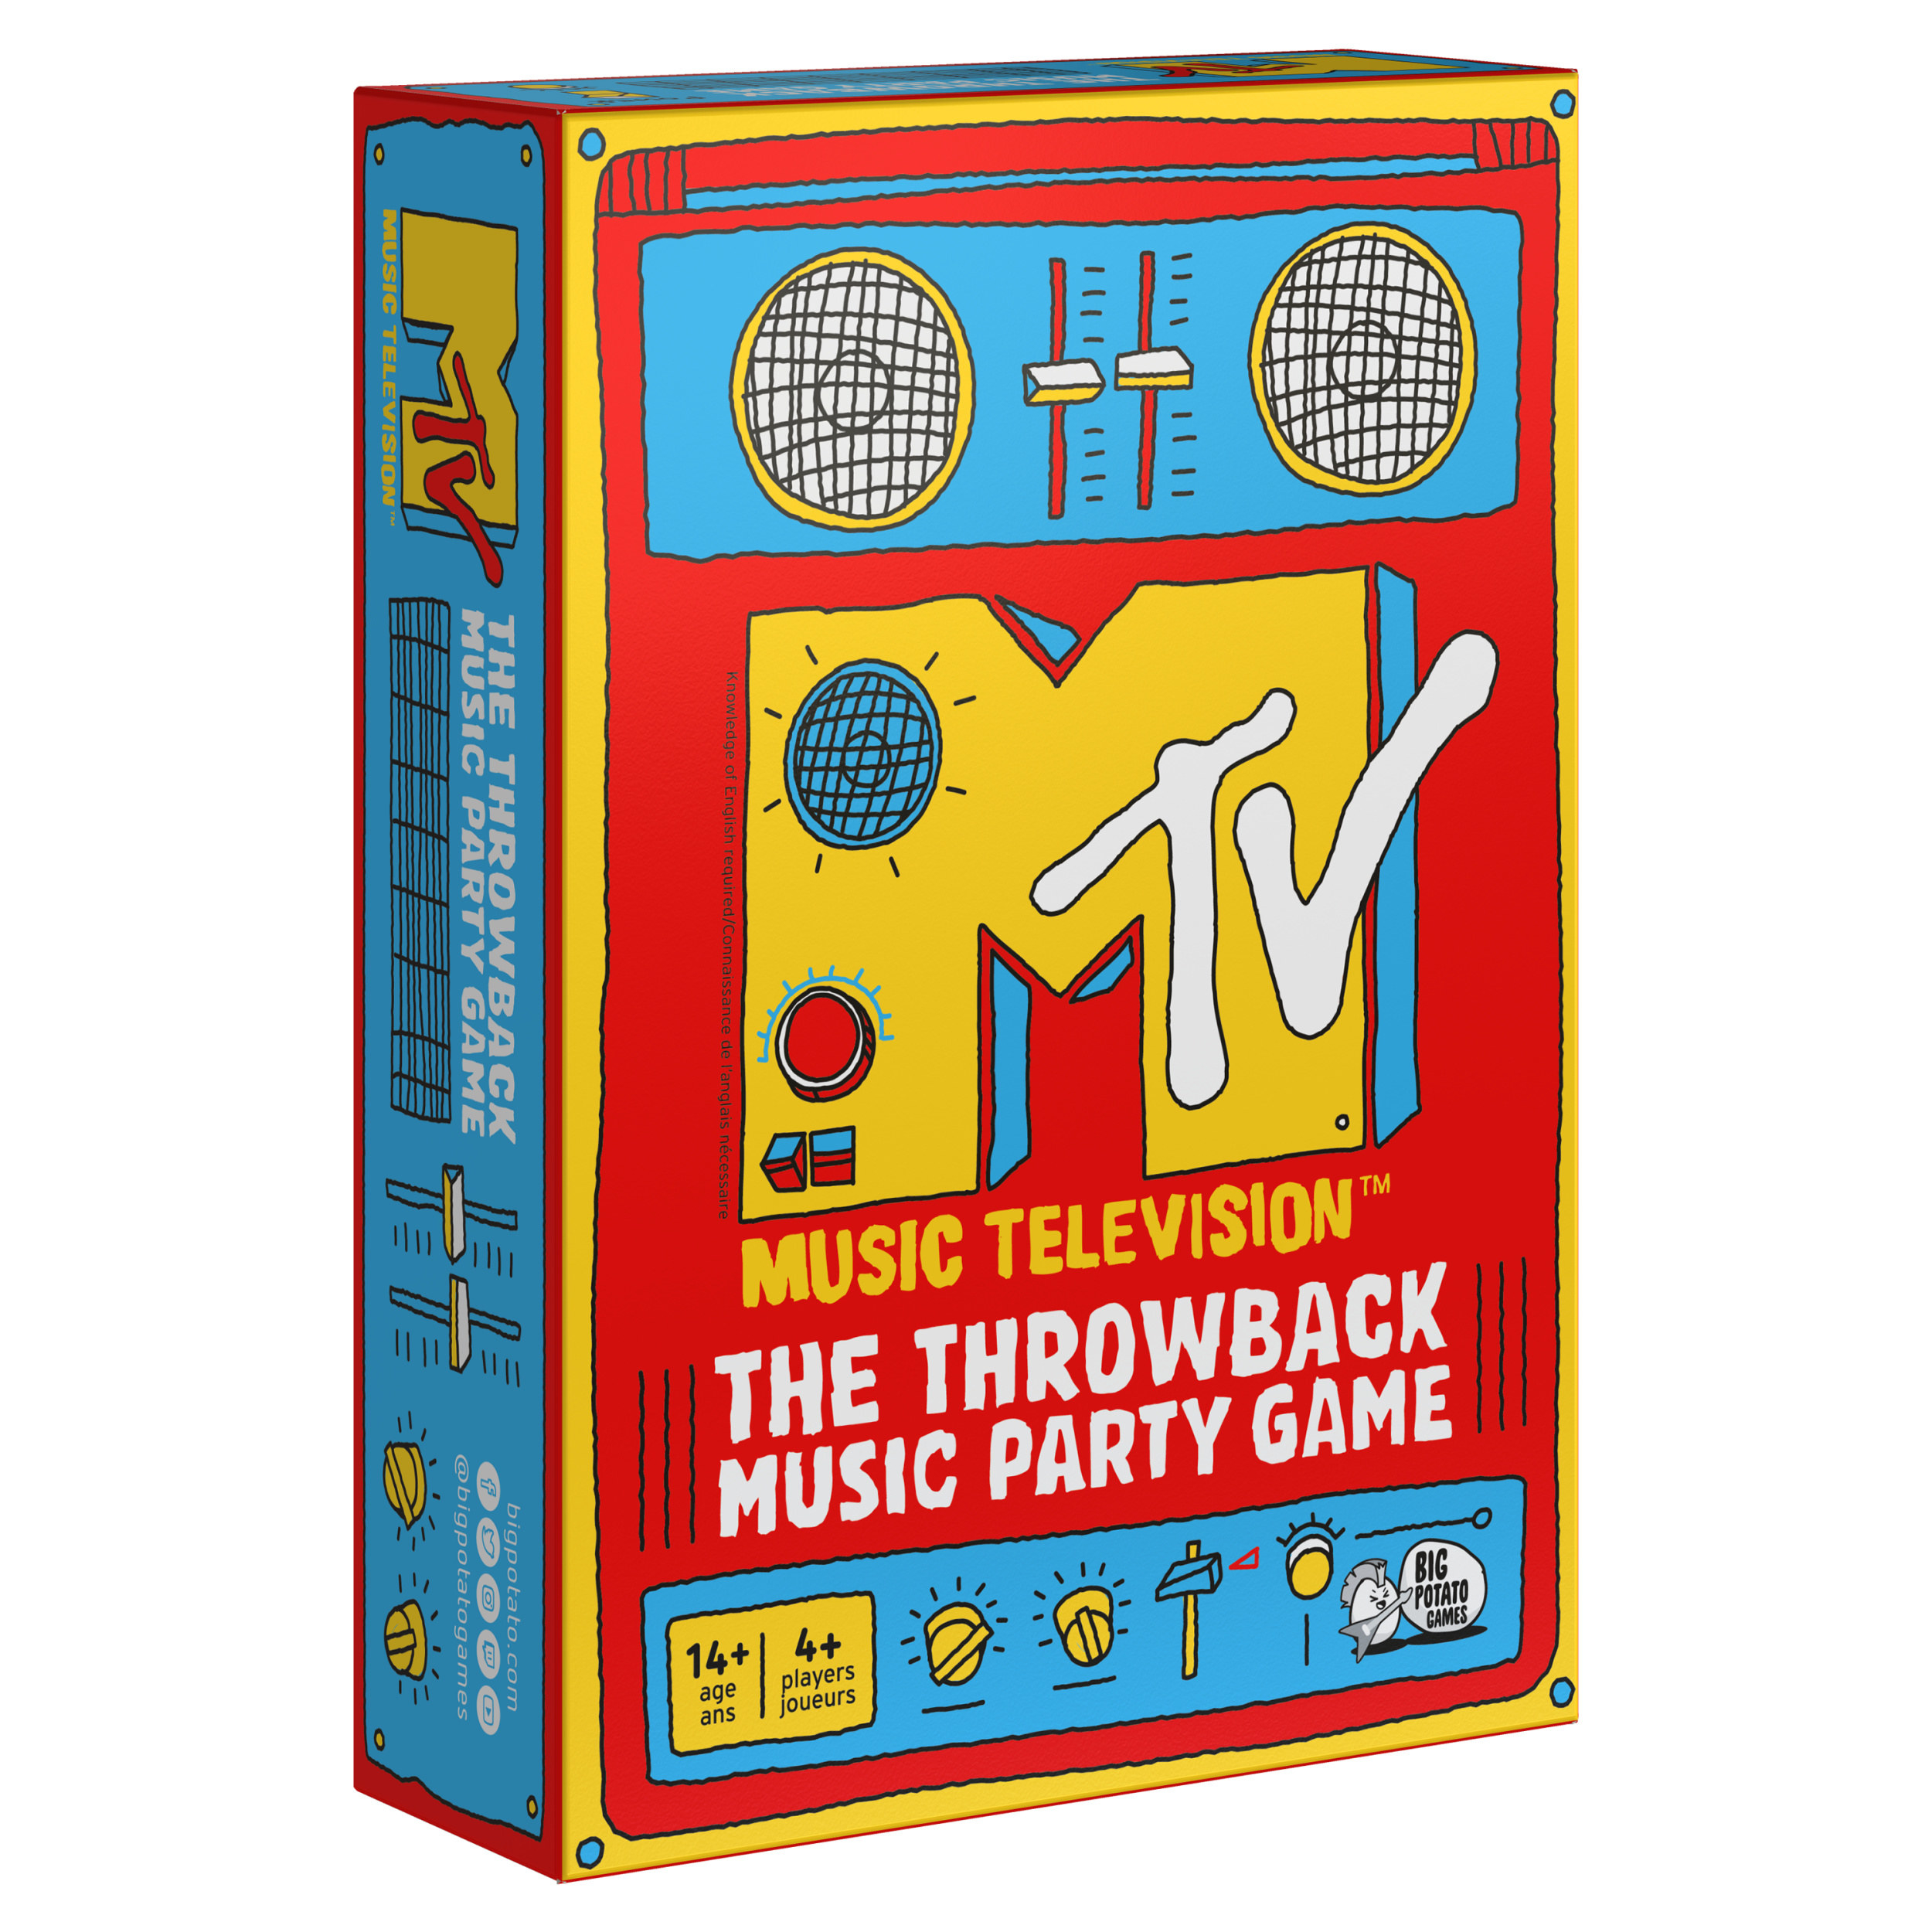 The MTV games